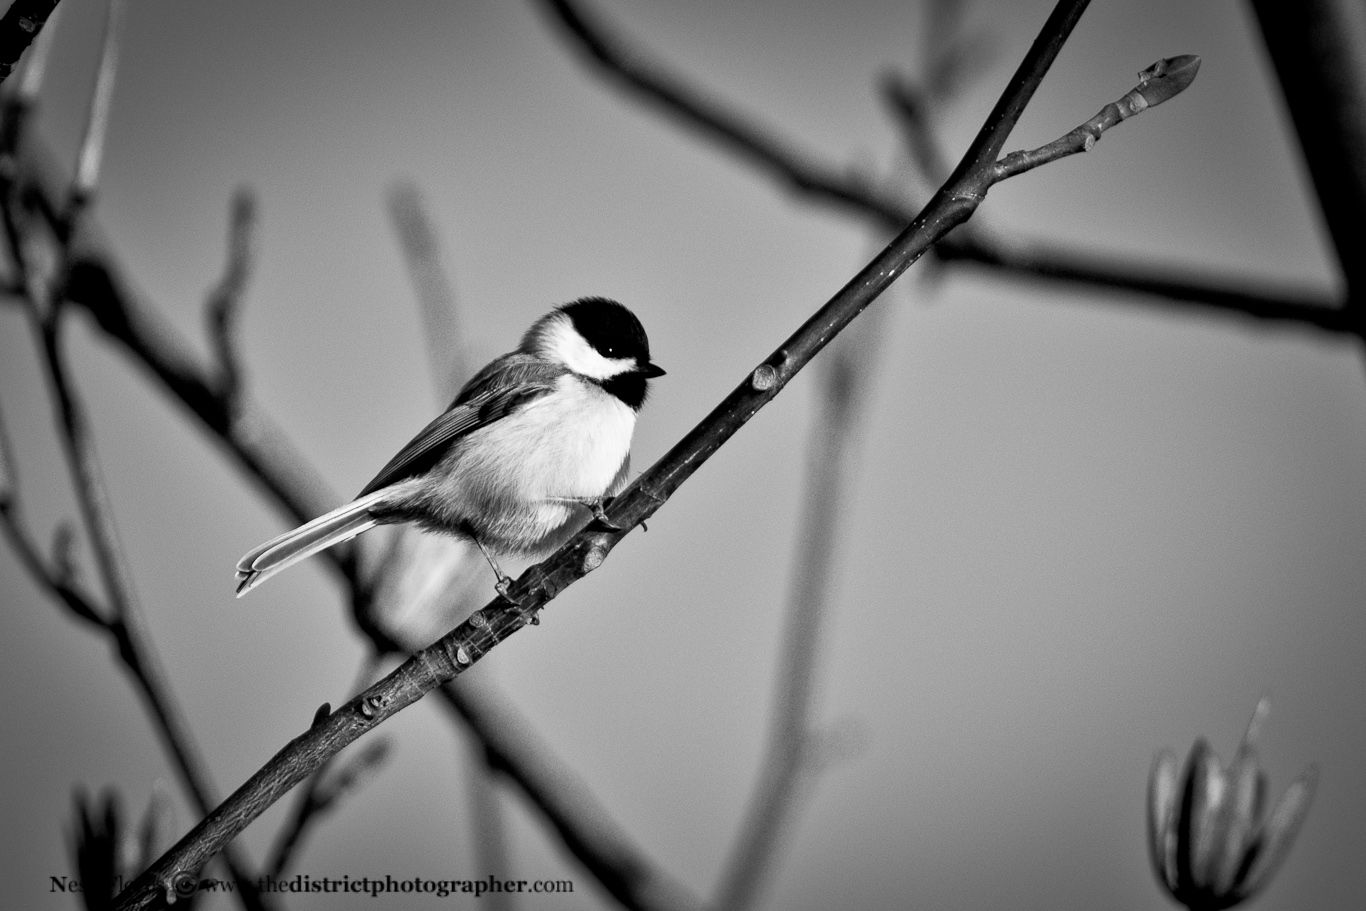 black and white pictures of tweety bird tweety bird in black and white black and white birds tweety and of pictures black bird white